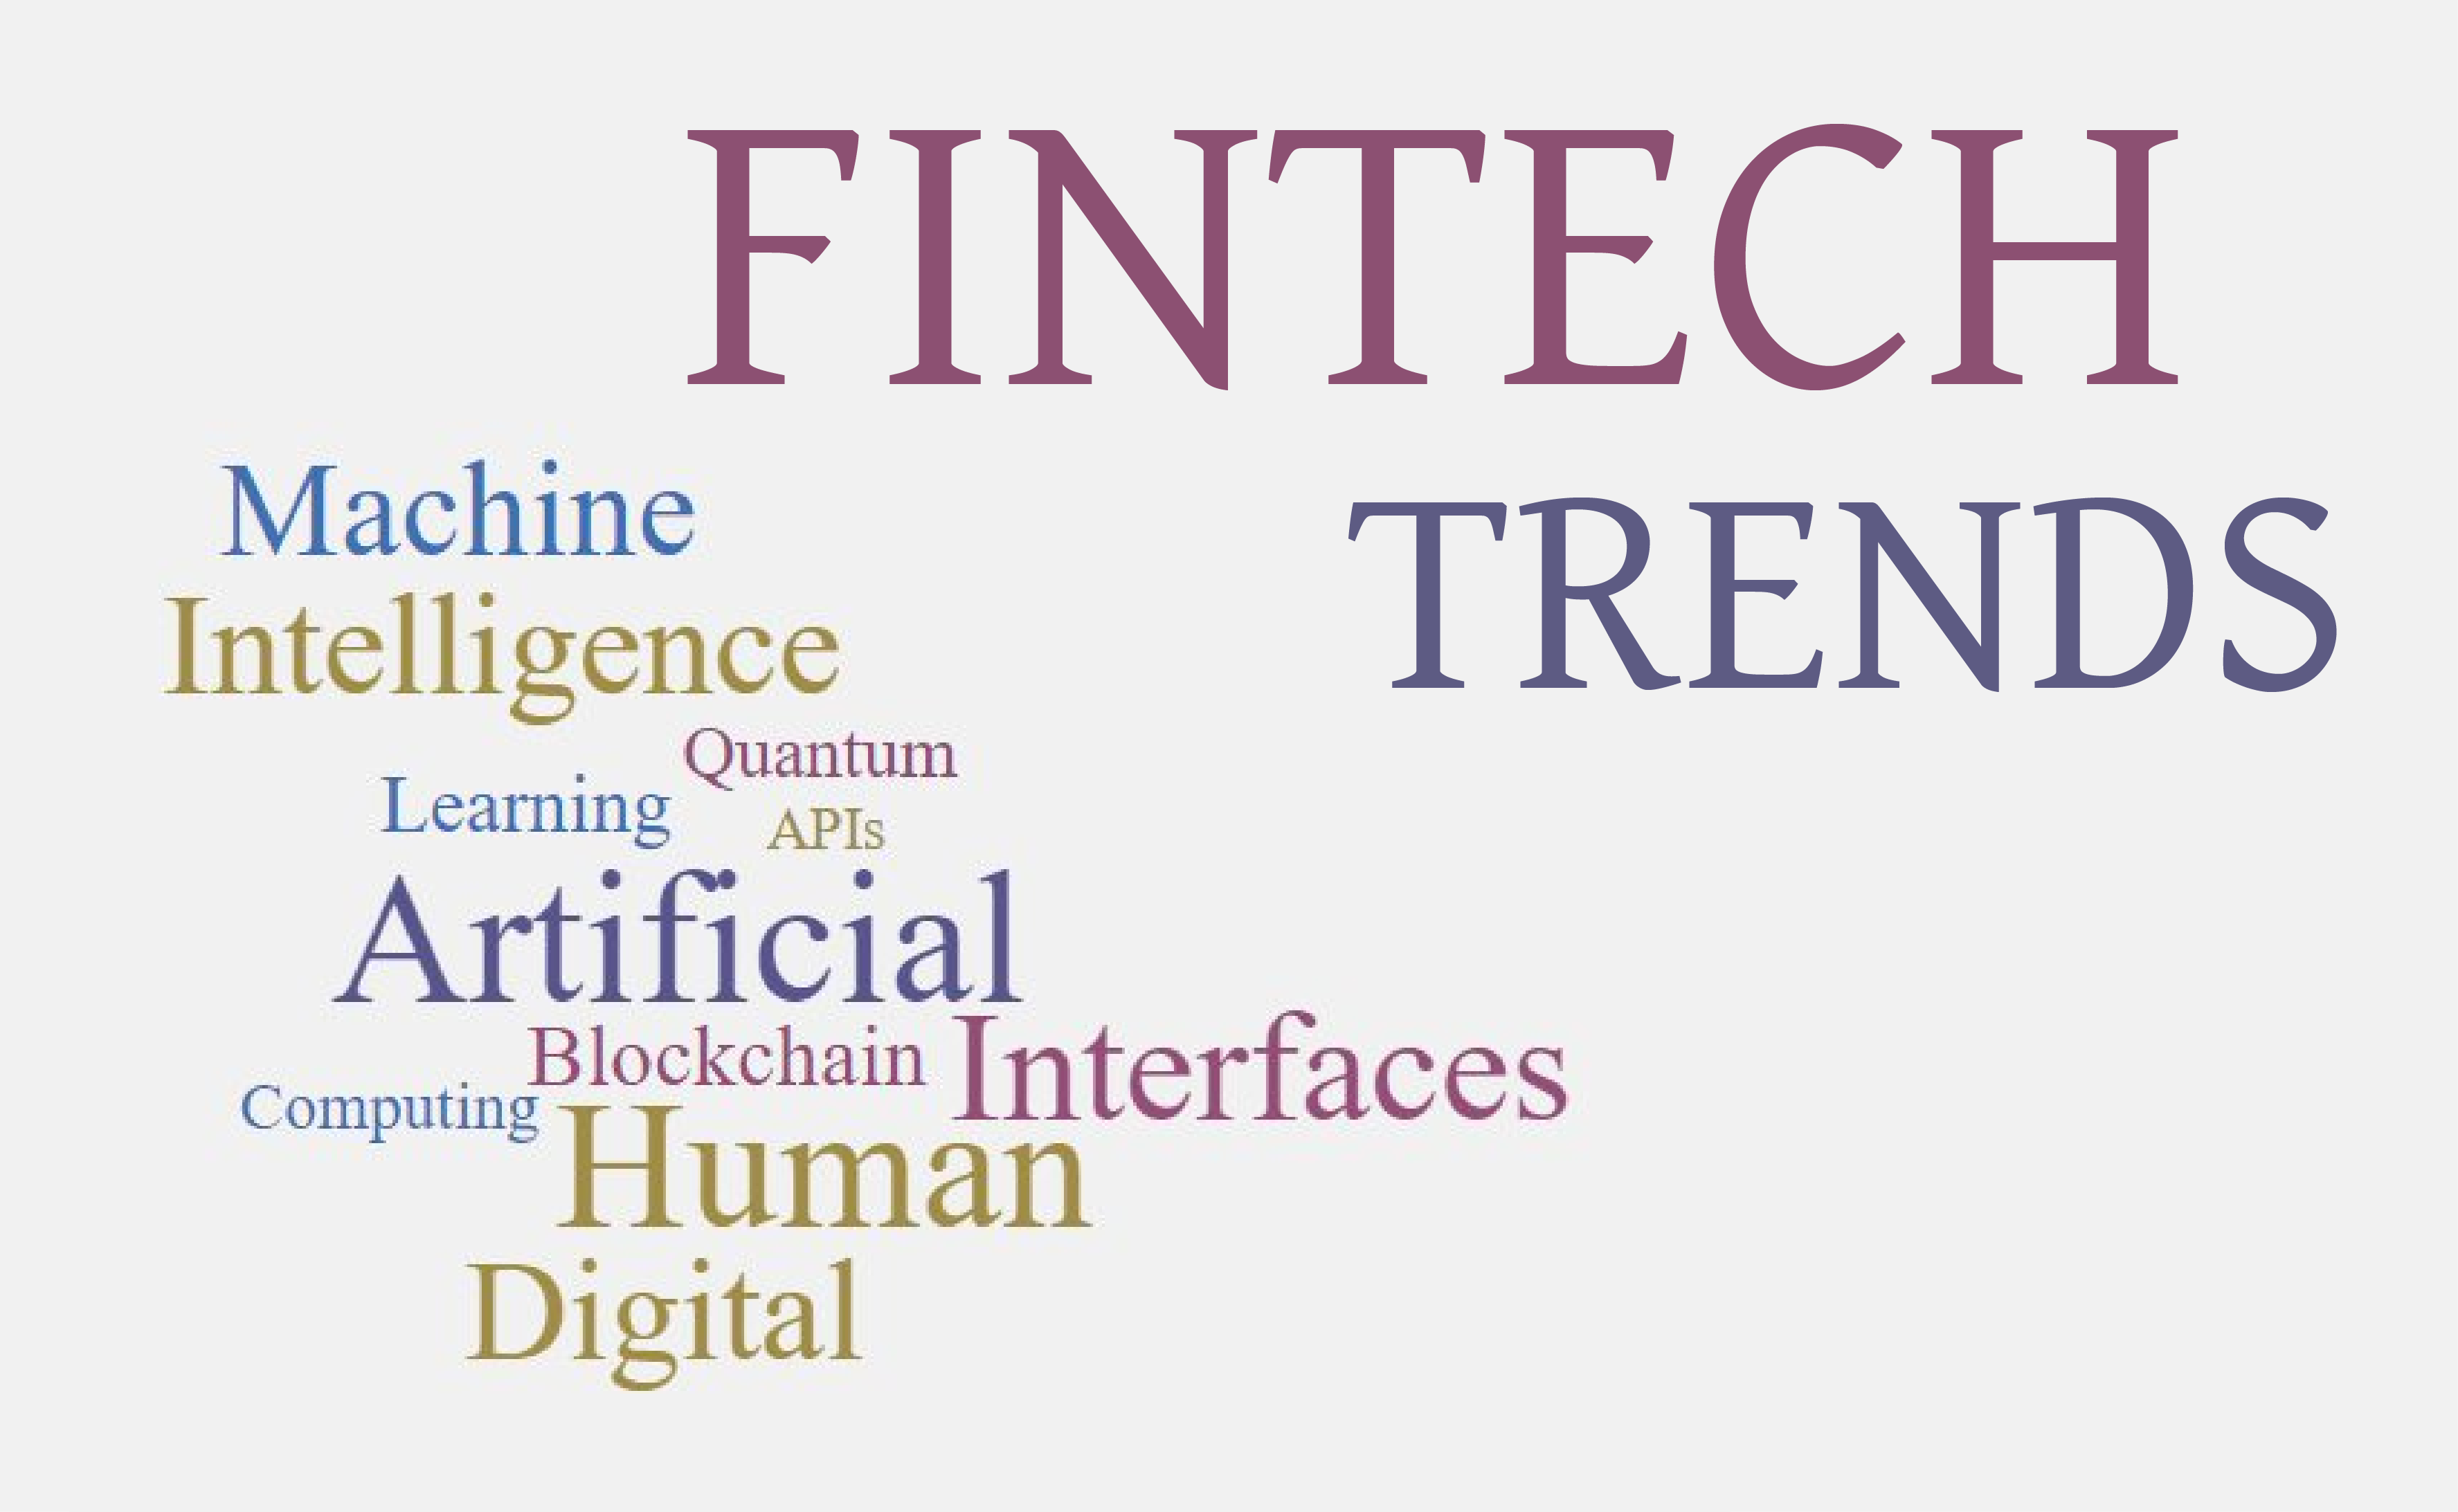 The Leading FinTech Trends Nowadays